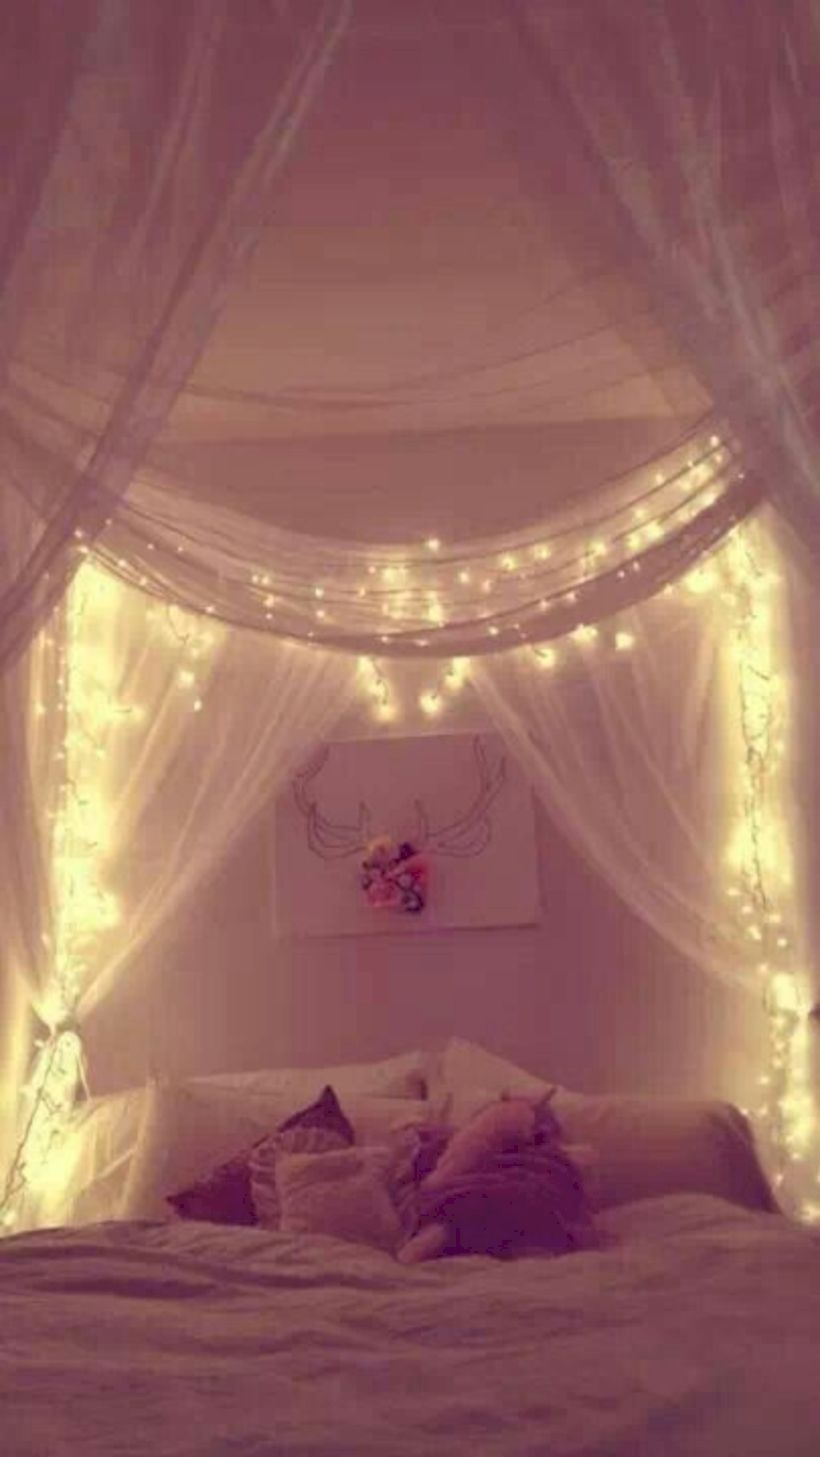 Twinkly Ways To Light Up Your Home With Christmas Fairy Light - Twinkly bedroom lights